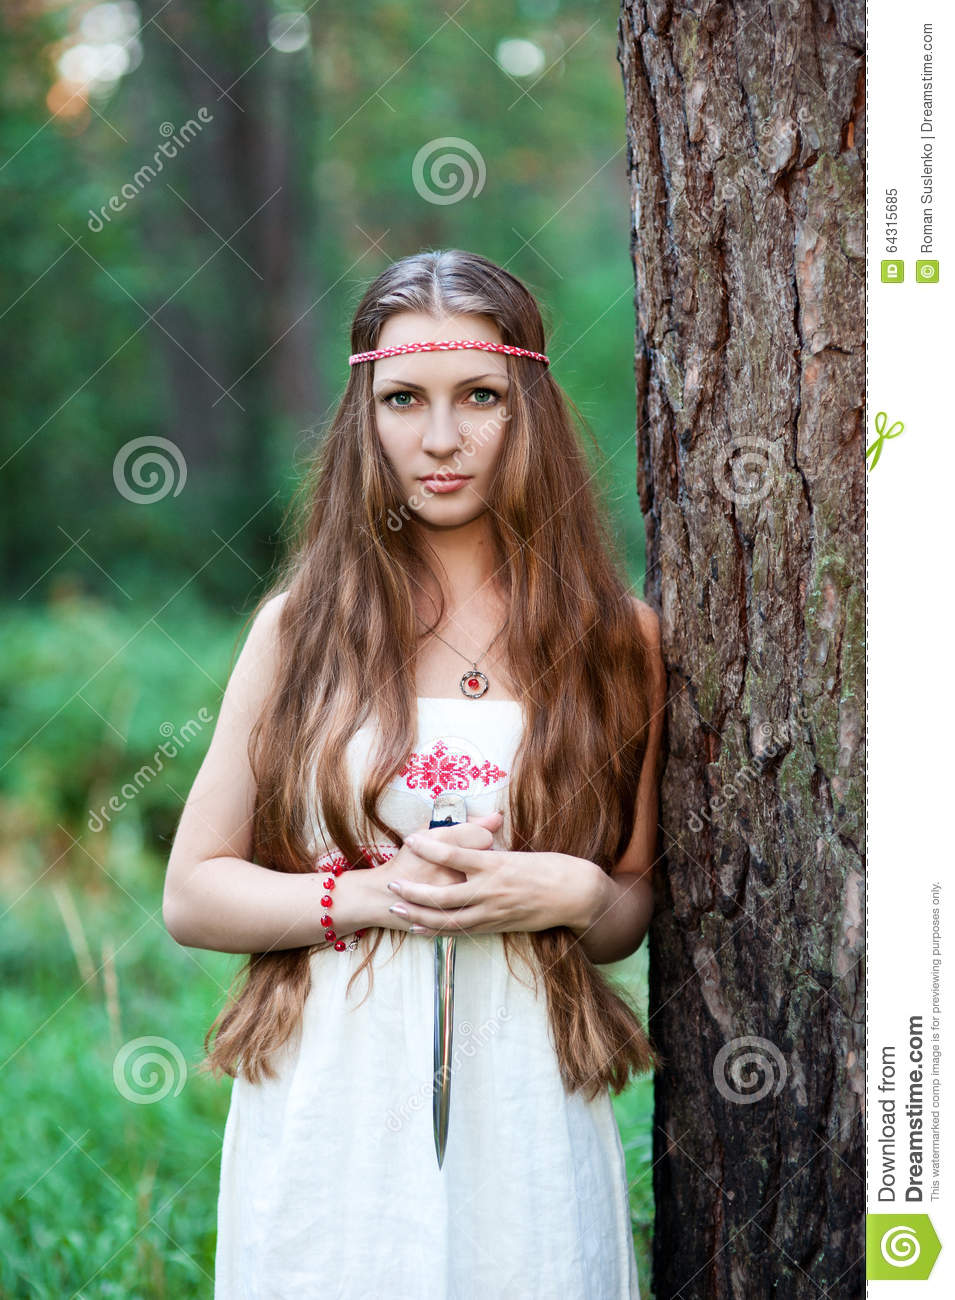 Girl With The Blog: Young Pagan Slavic Girl With A Dagger Stock Image